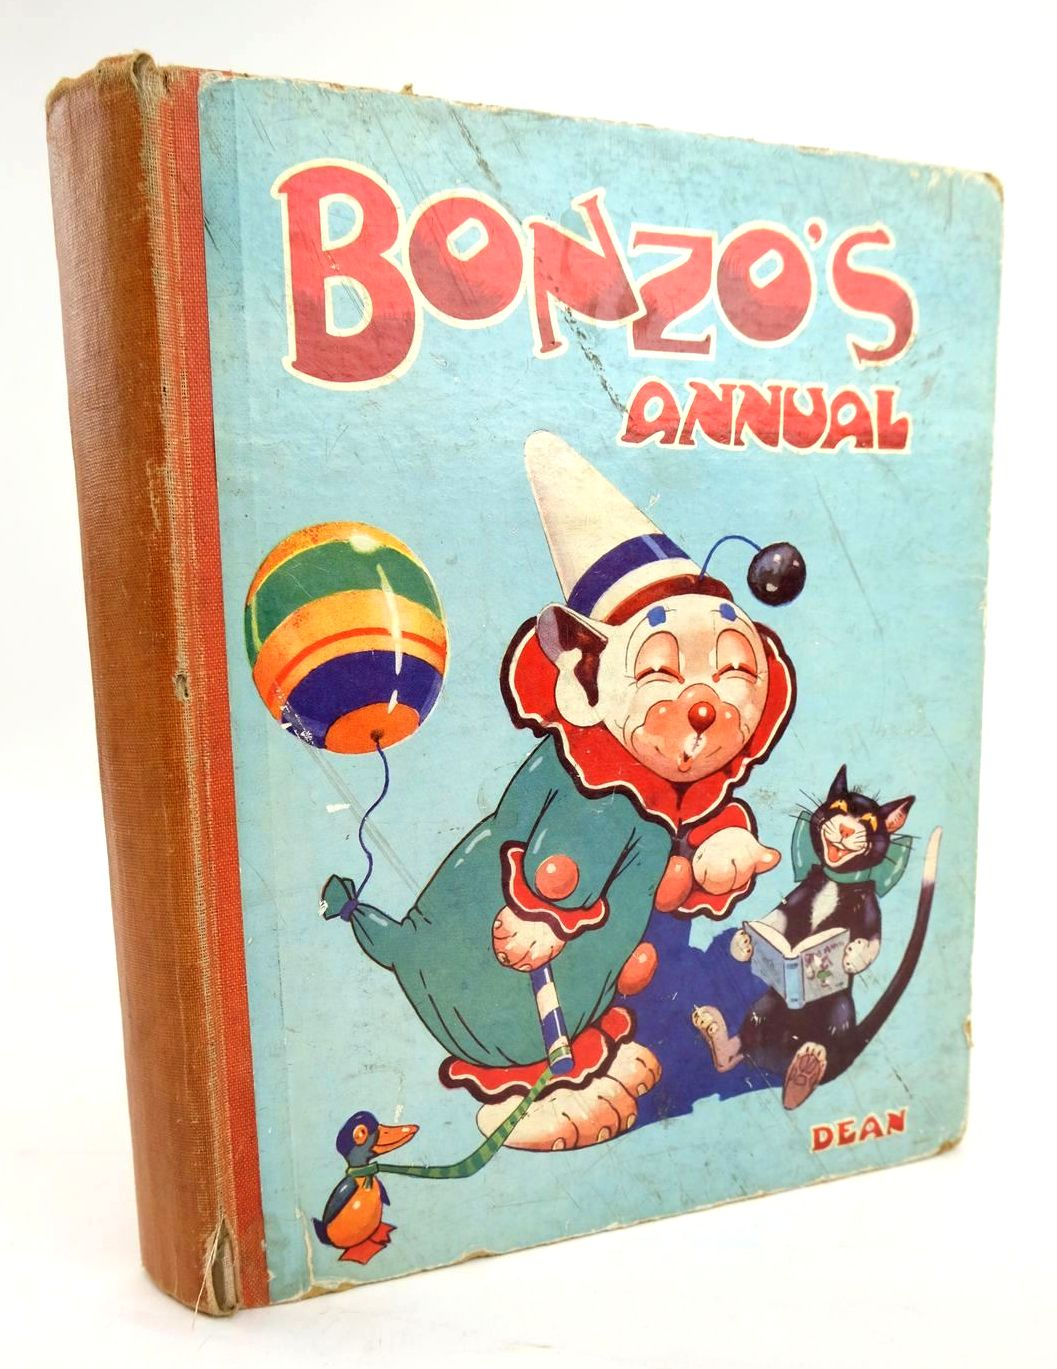 Photo of BONZO'S ANNUAL 1937 written by Studdy, G.E. published by Dean & Son Ltd. (STOCK CODE: 1319452)  for sale by Stella & Rose's Books